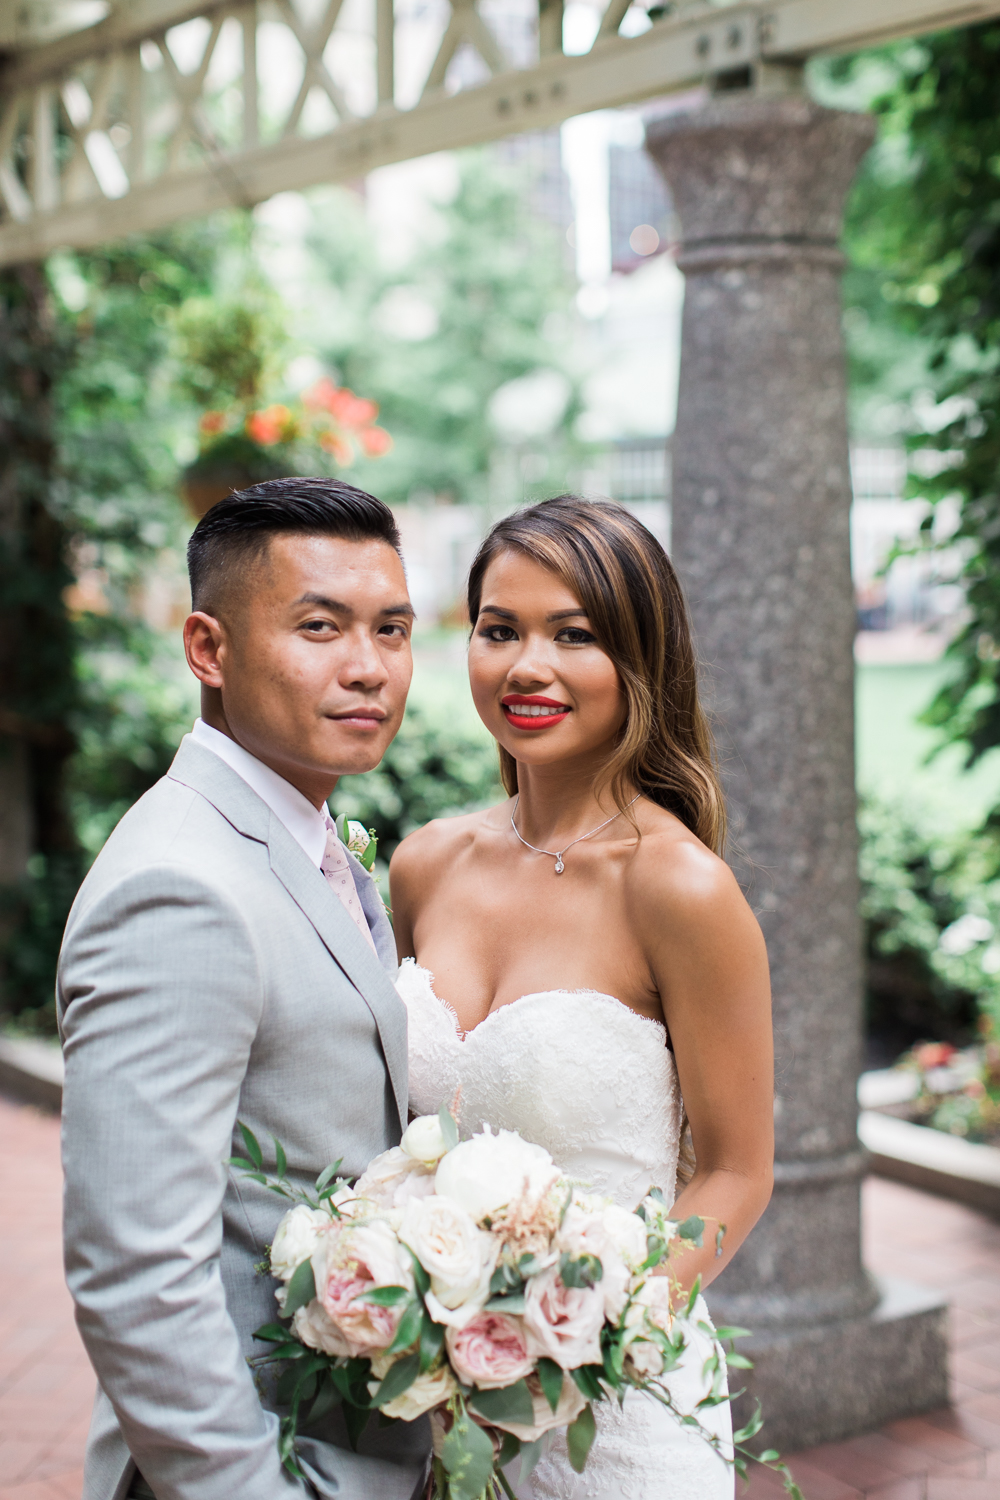 Post office square boston vietnamese wedding photos